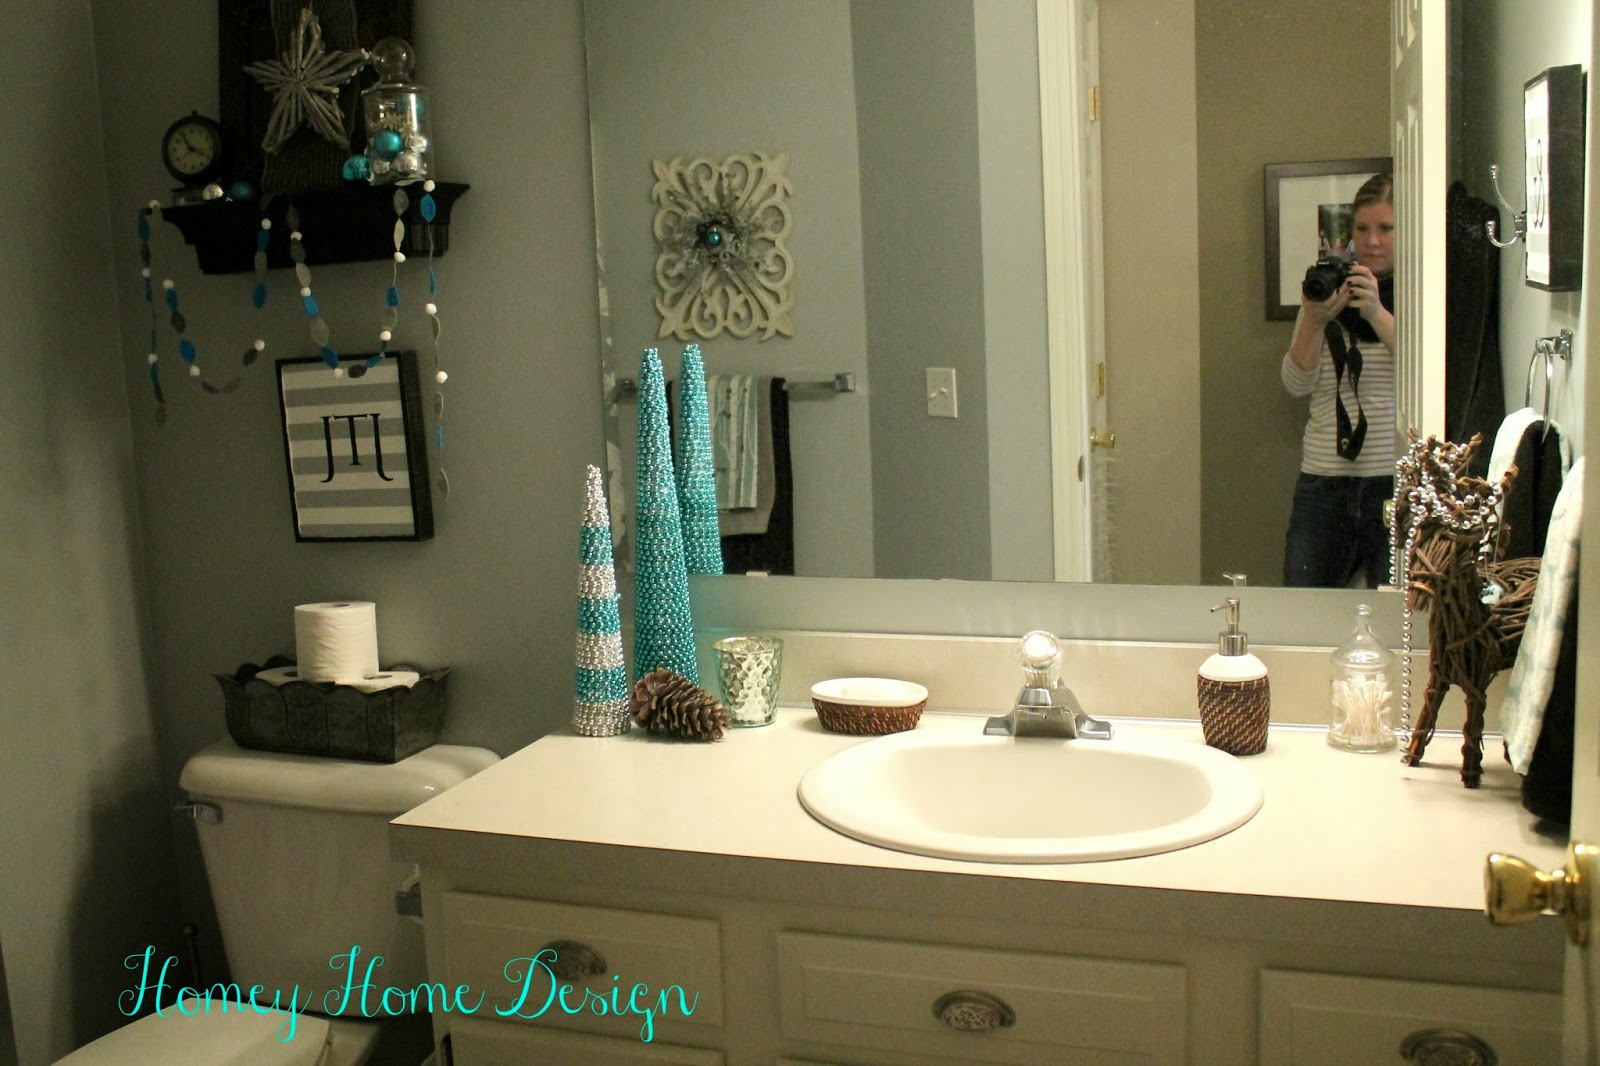 Homey home design bathroom christmas ideas for Bathroom designs photos ideas